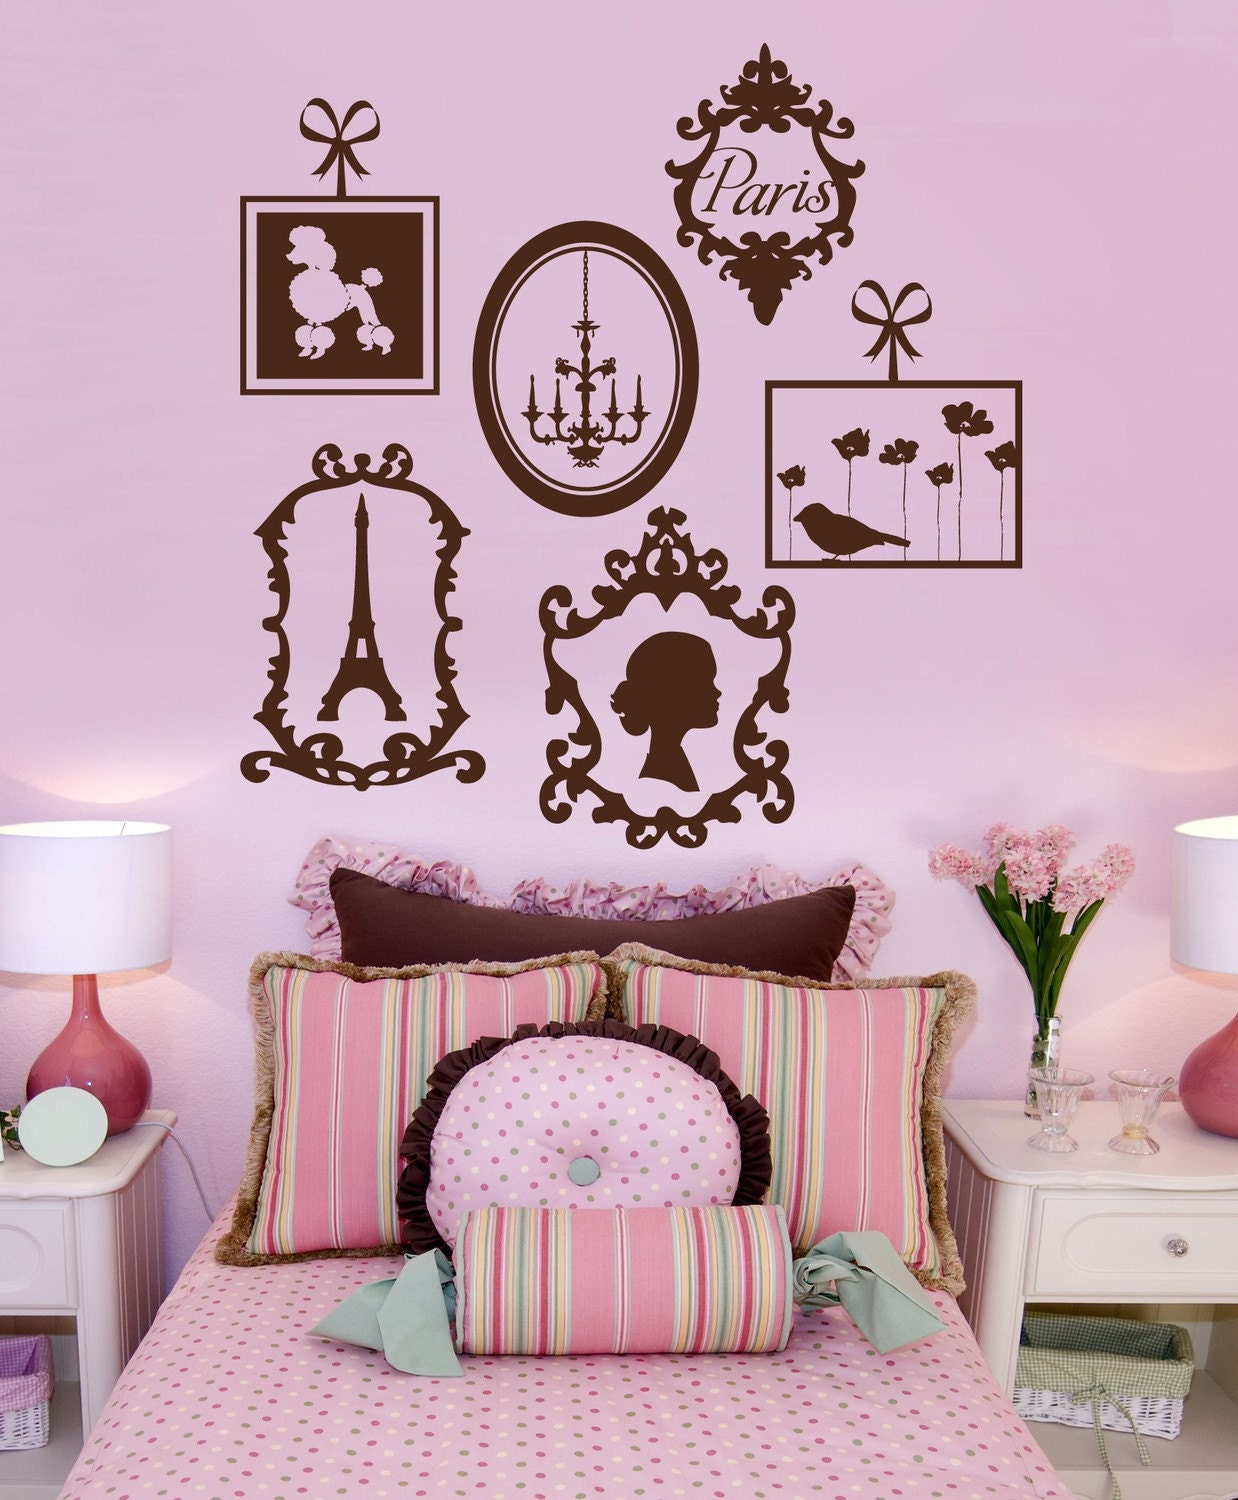 Exceptionnel Description. Pairs Inspired Wall Decals ...